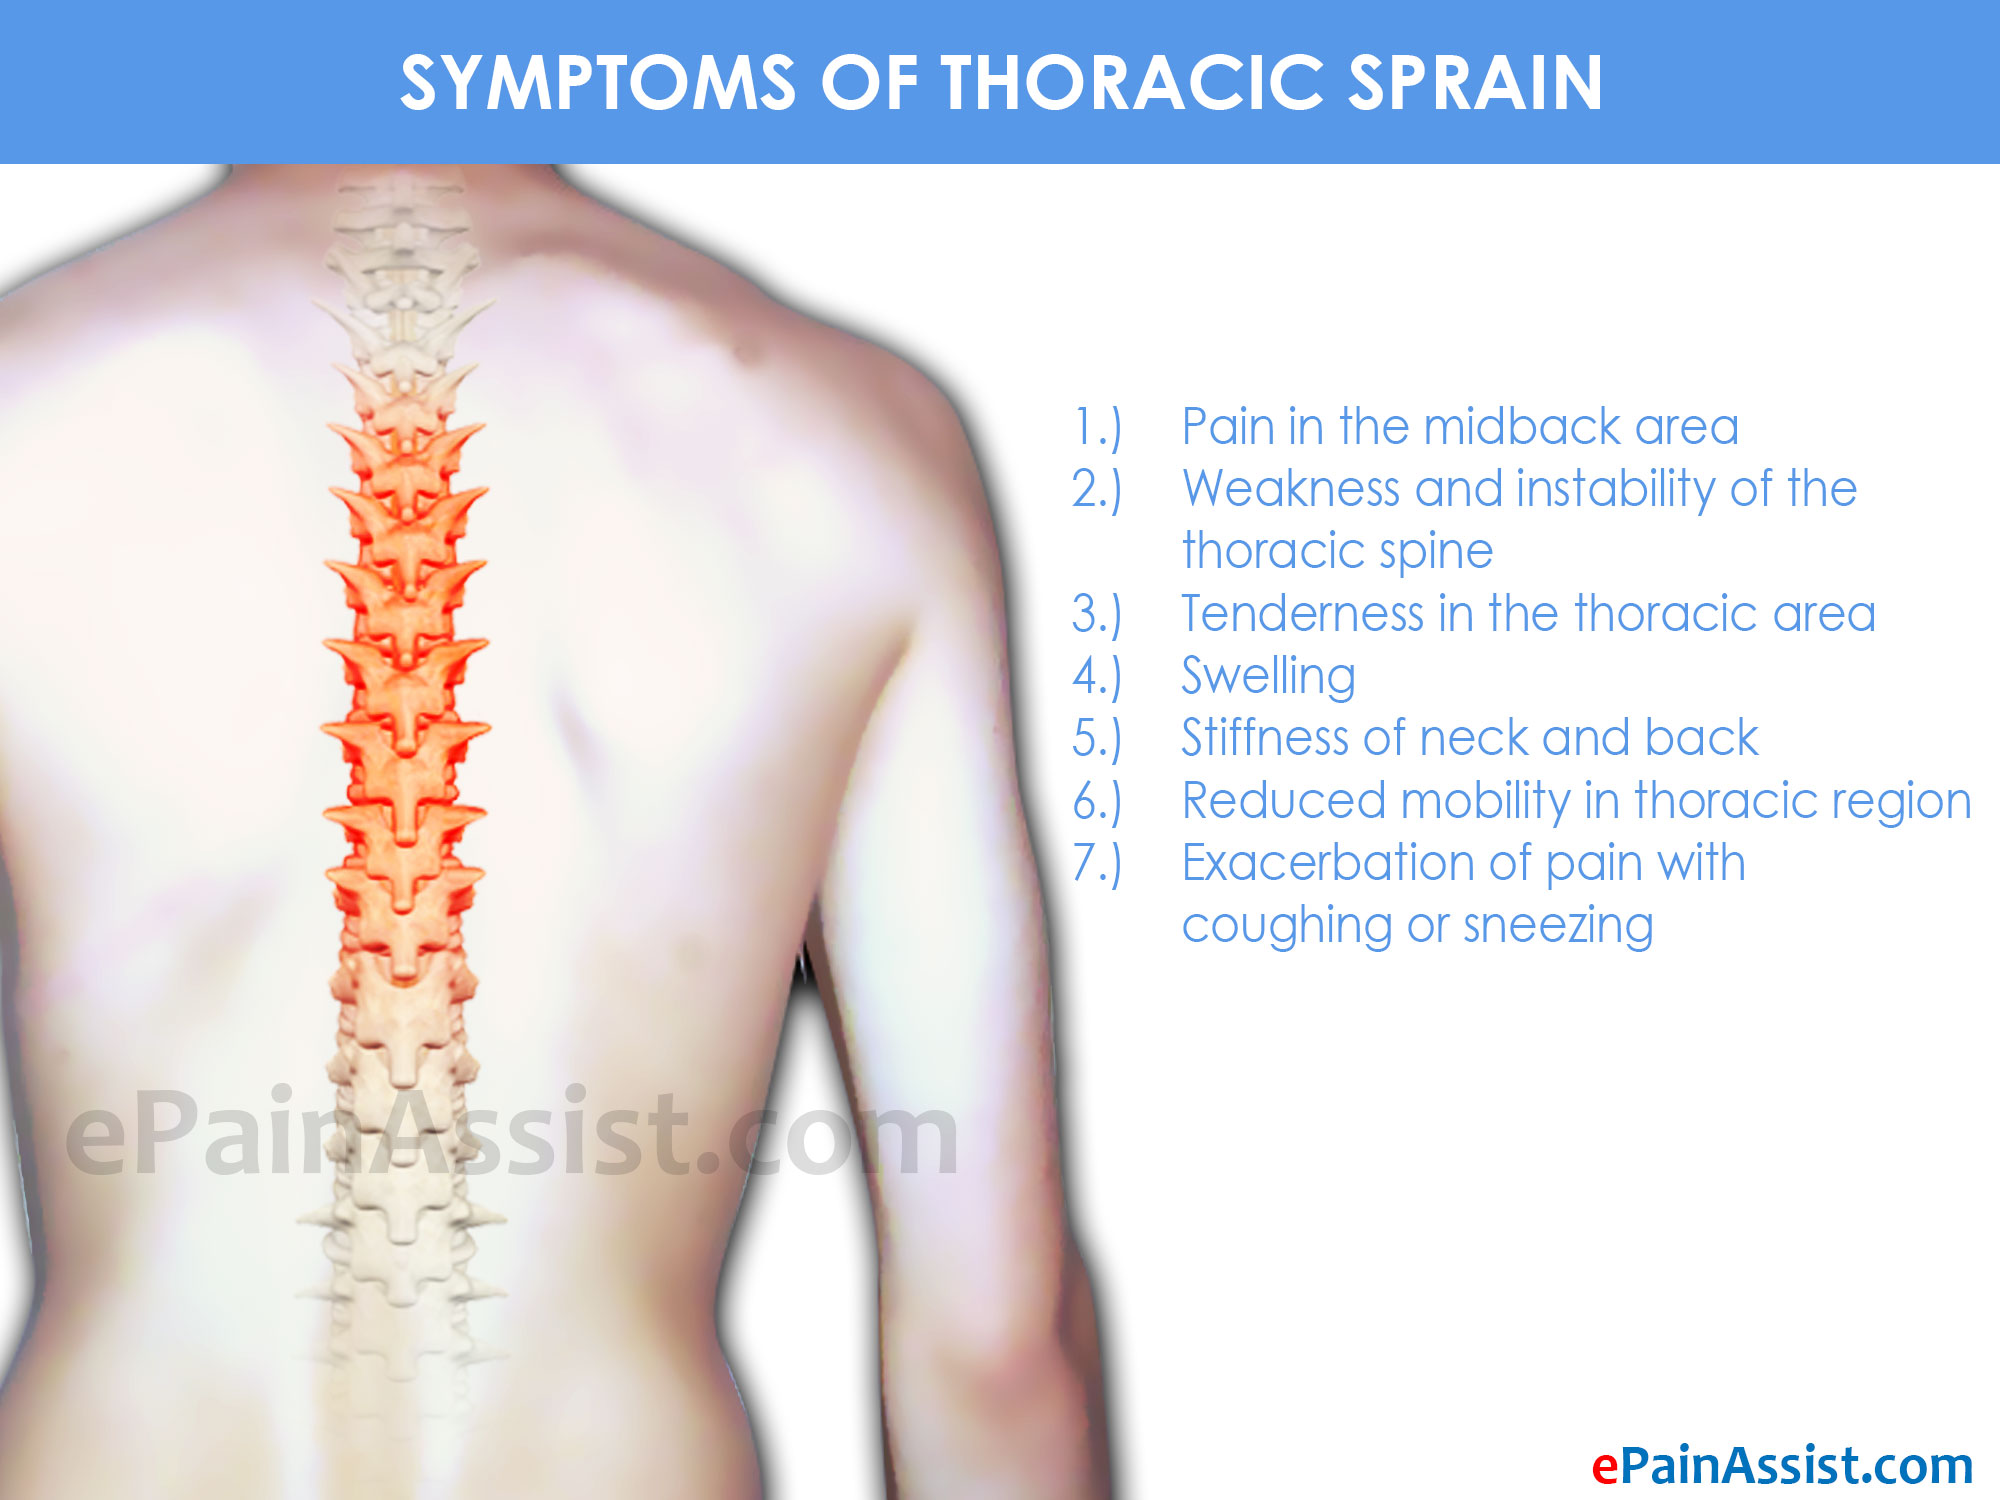 Thoracic Sprain: Treatment, Exercise, Prevention, Symptoms